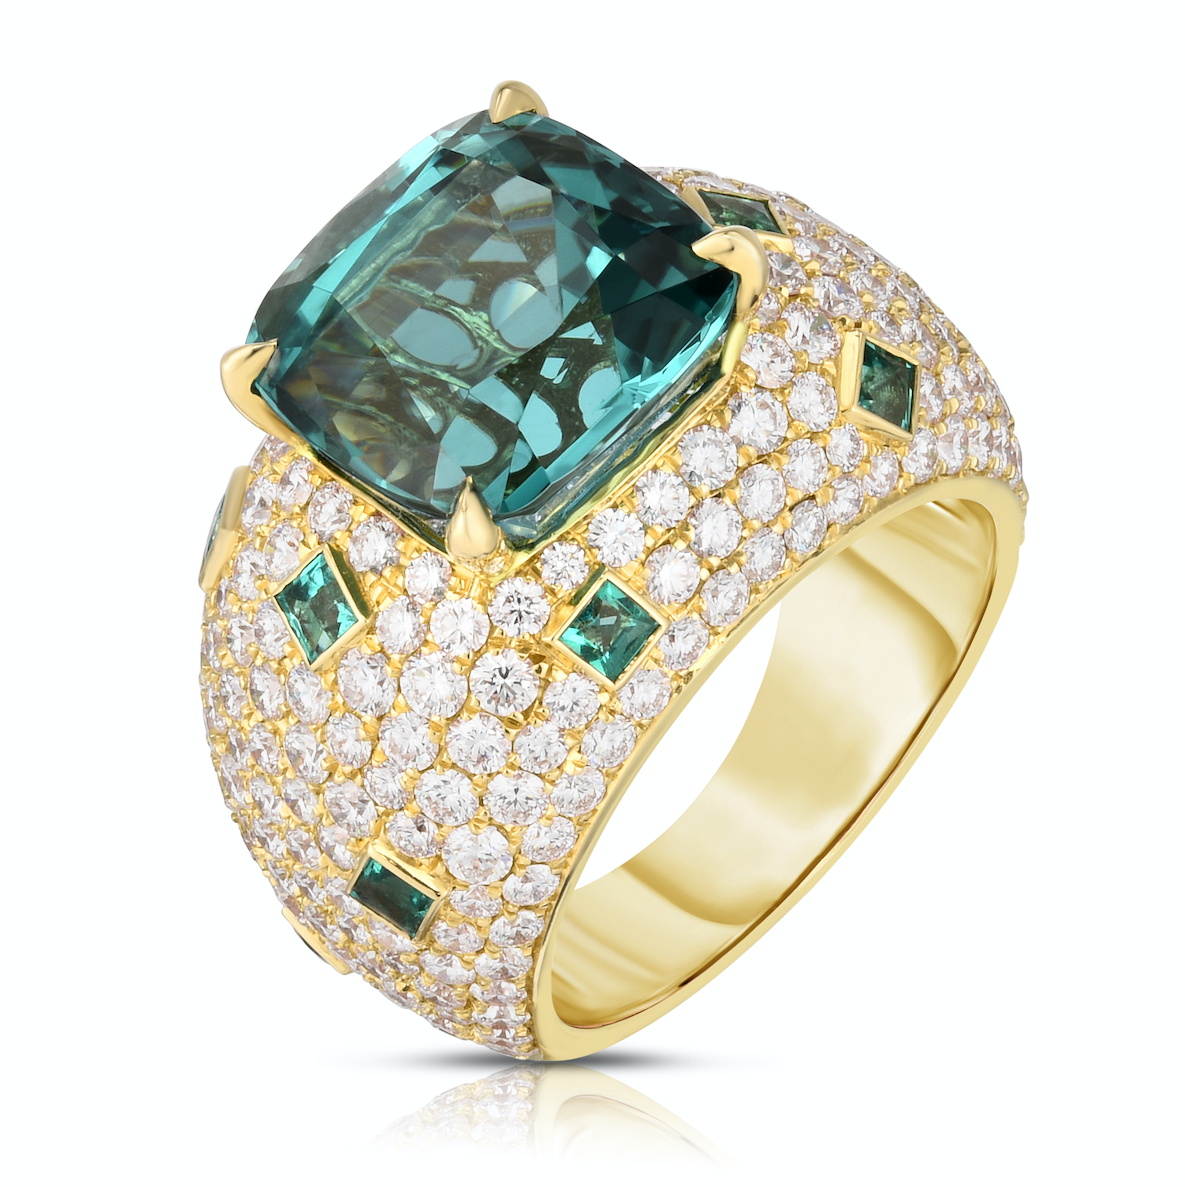 18K Yellow Gold Tourmaline, Diamond and Emerald Ring